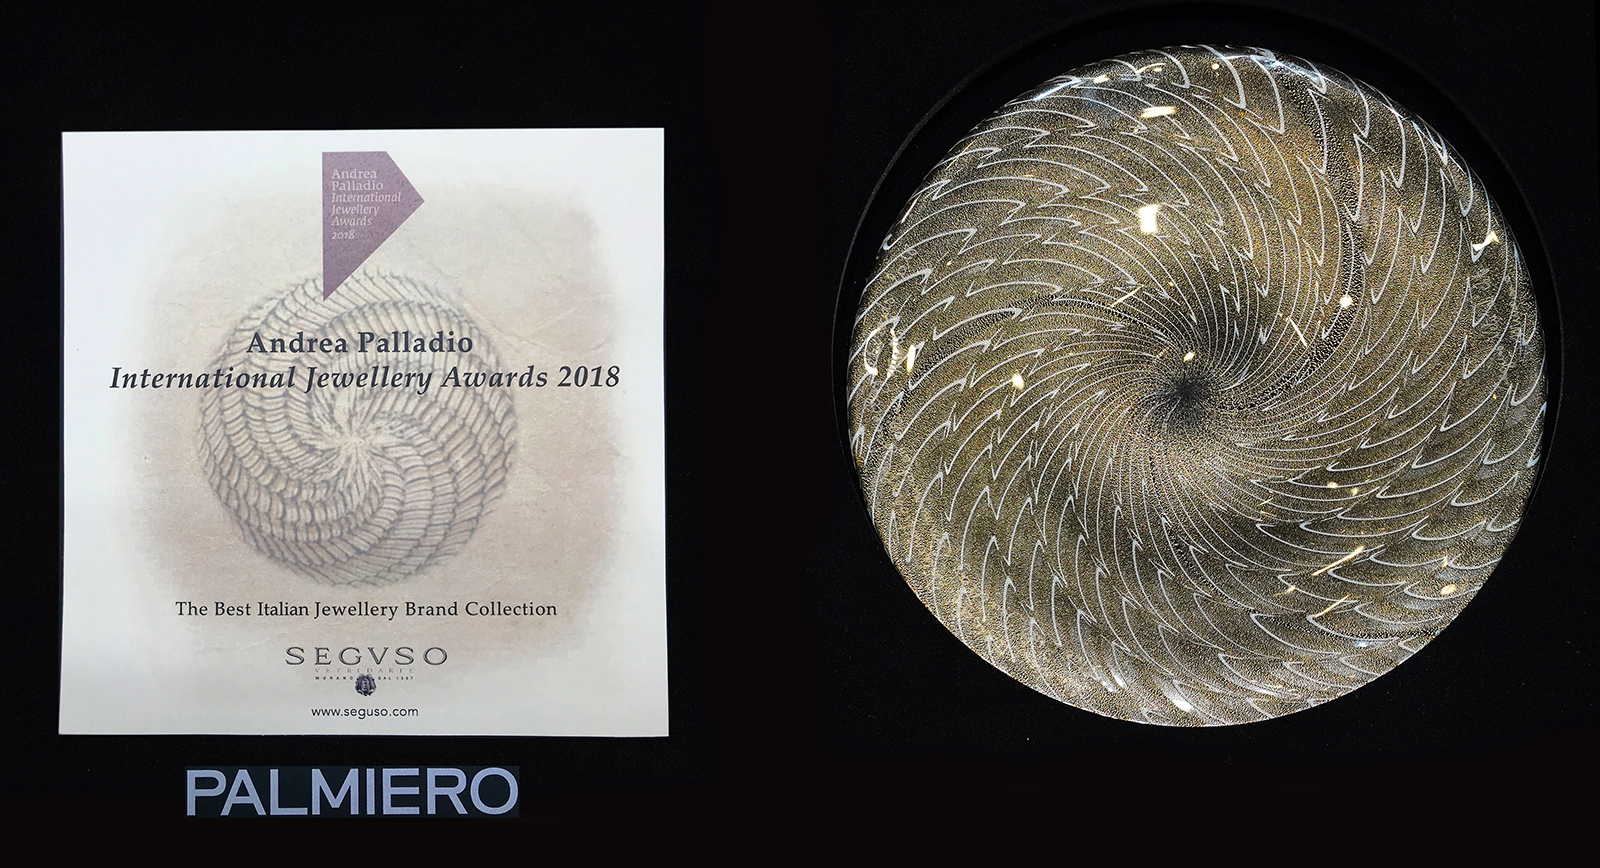 Palmiero wins Andrea Palladio International Jewellery Awards for Best Collection